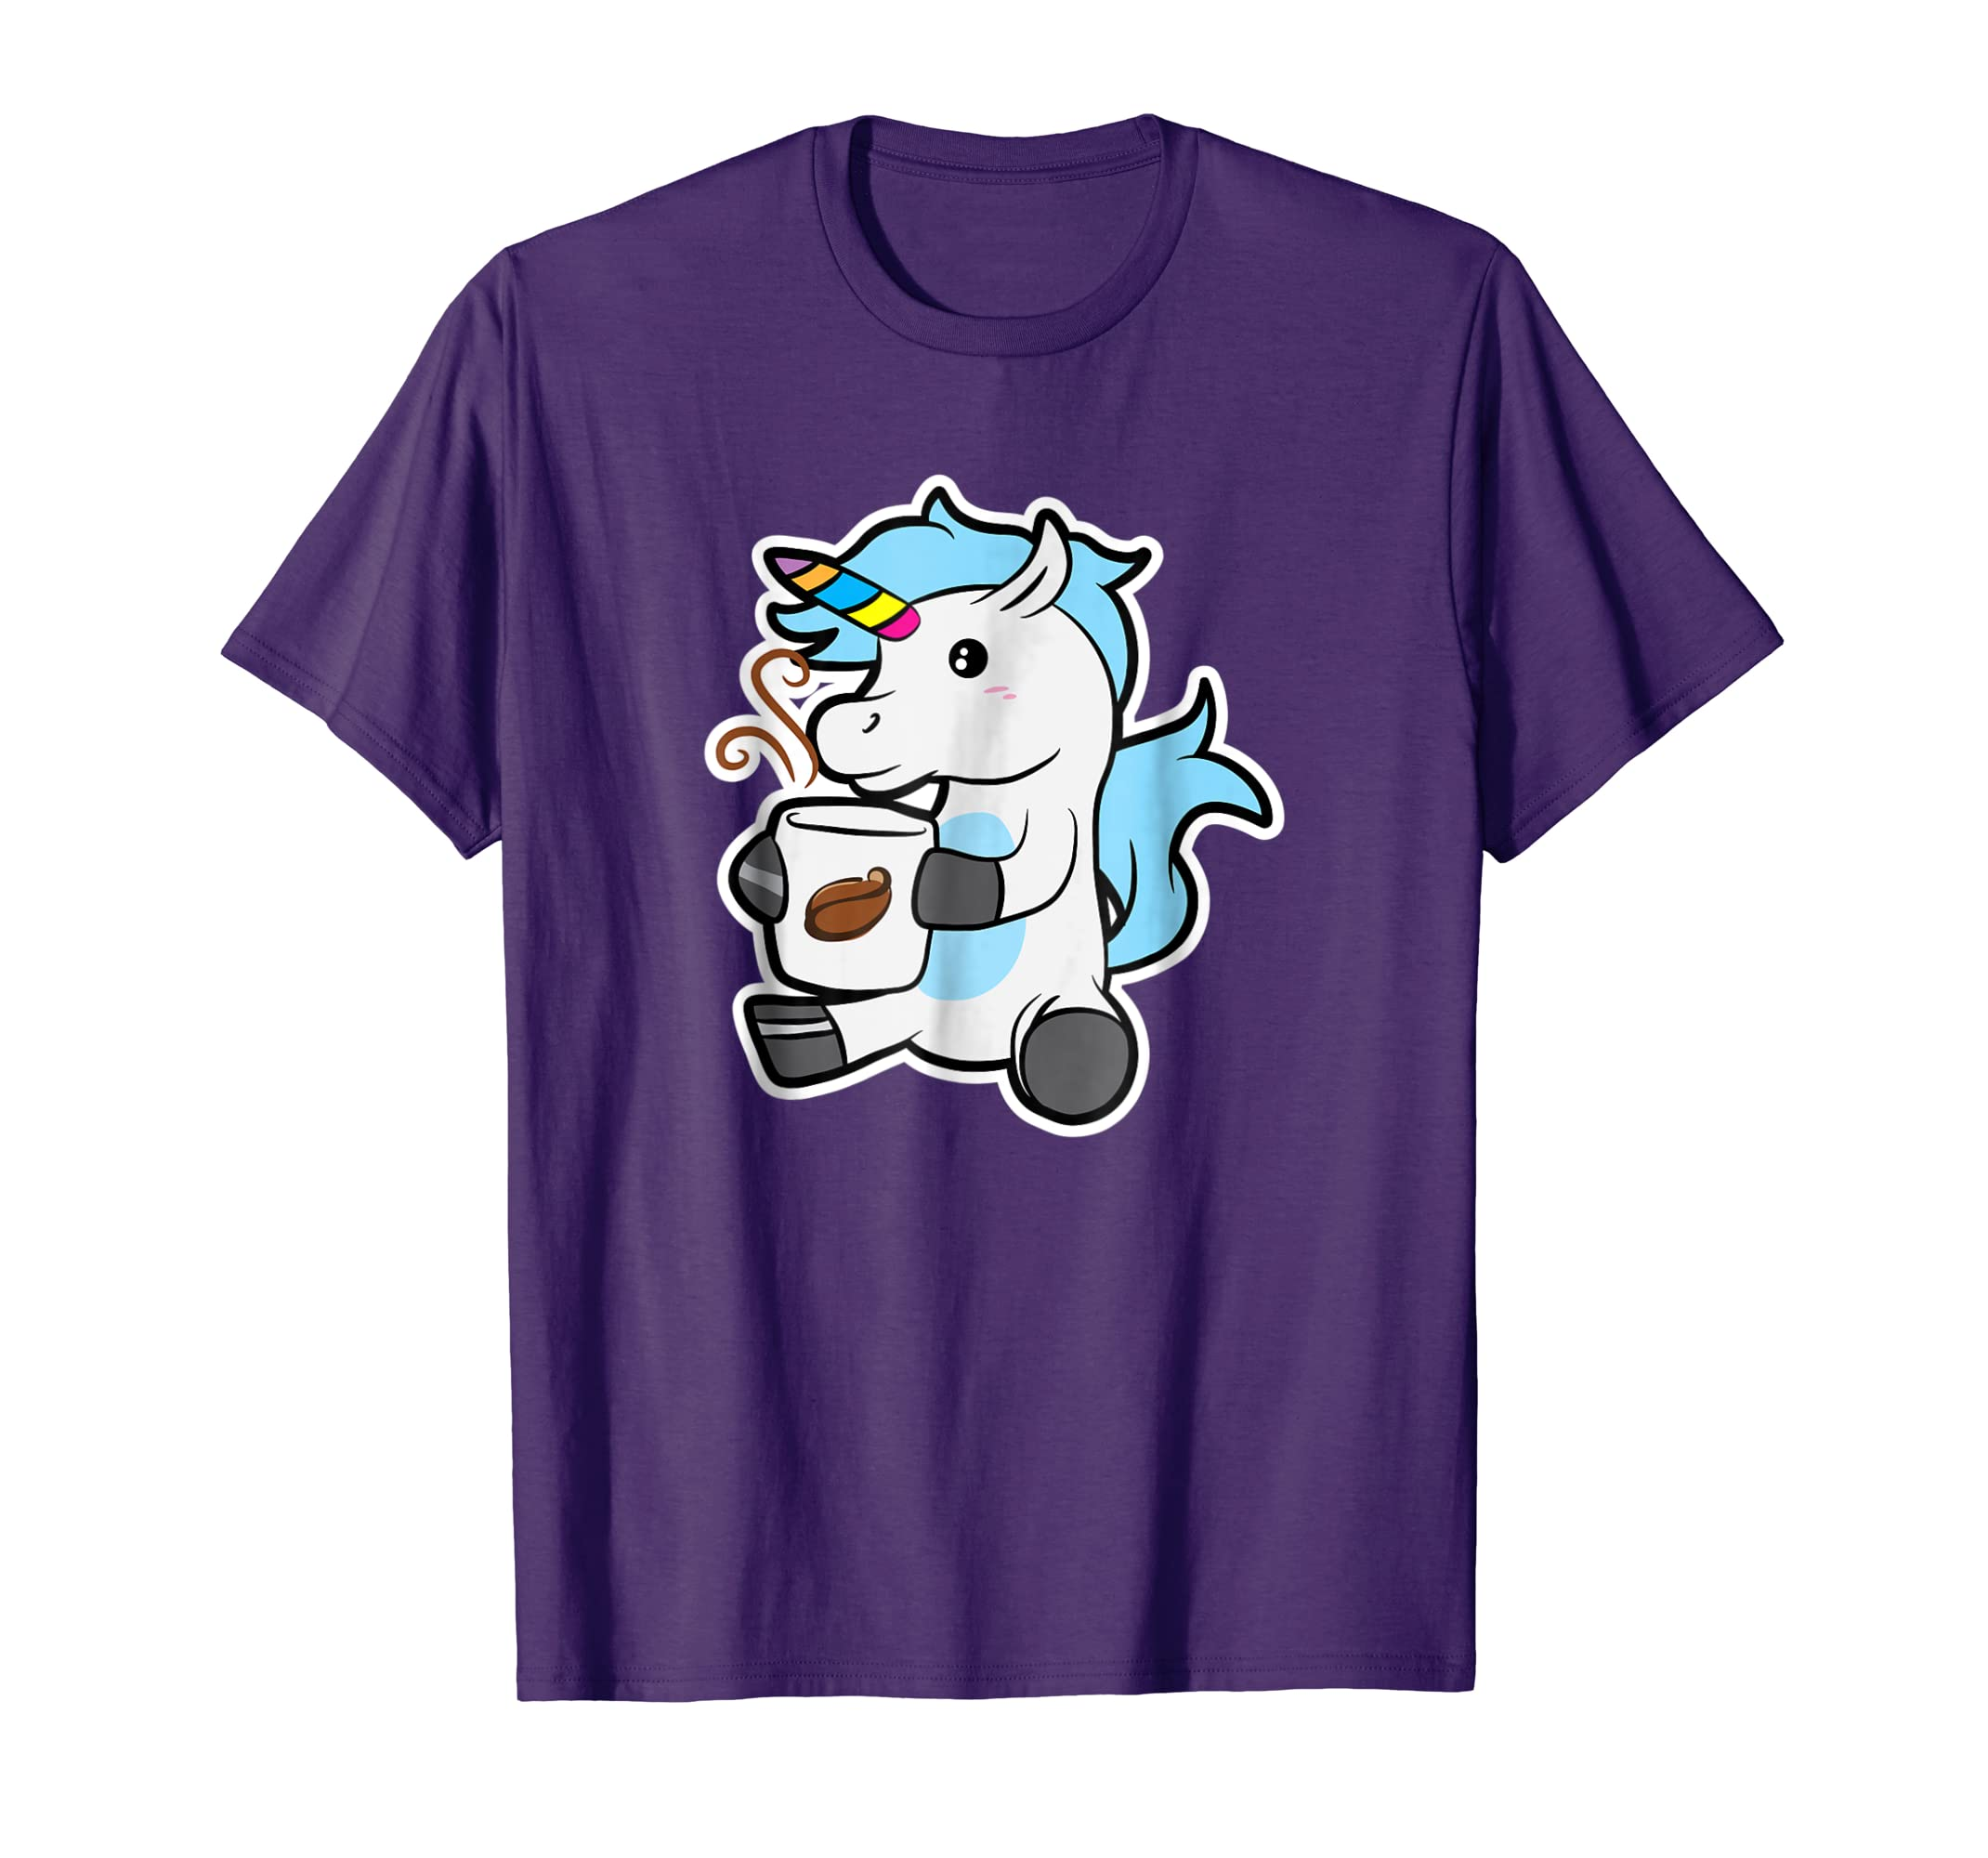 a17c0dbe Amazon.com: Funny Unicorn Coffee T-Shirt - Funny Coffee Unicorn Shirt:  Clothing